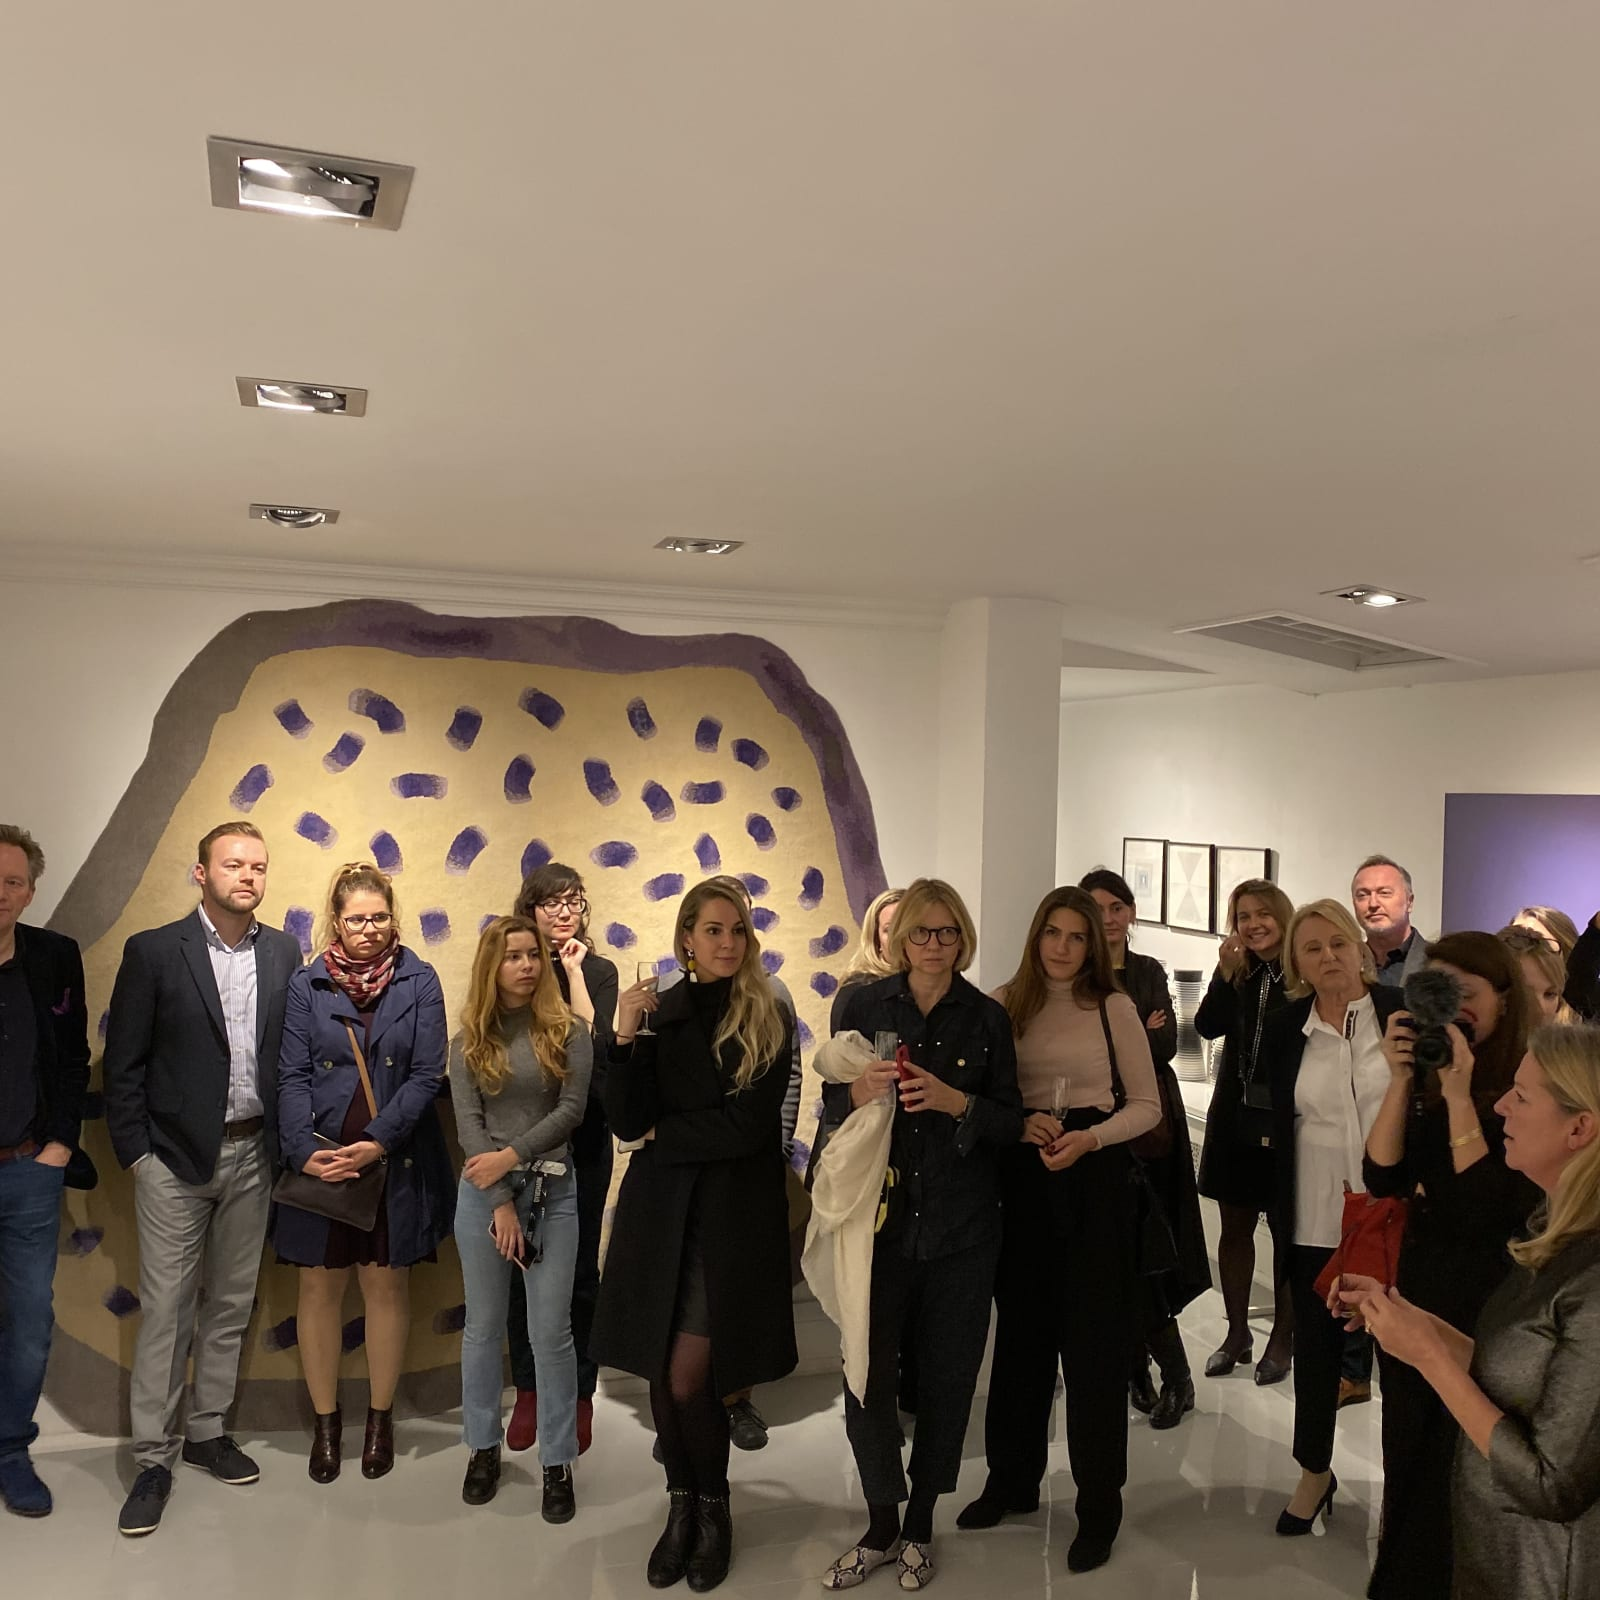 Lisa norris gallery X Creative Women's Network, and a talk by Jane Goodwin.